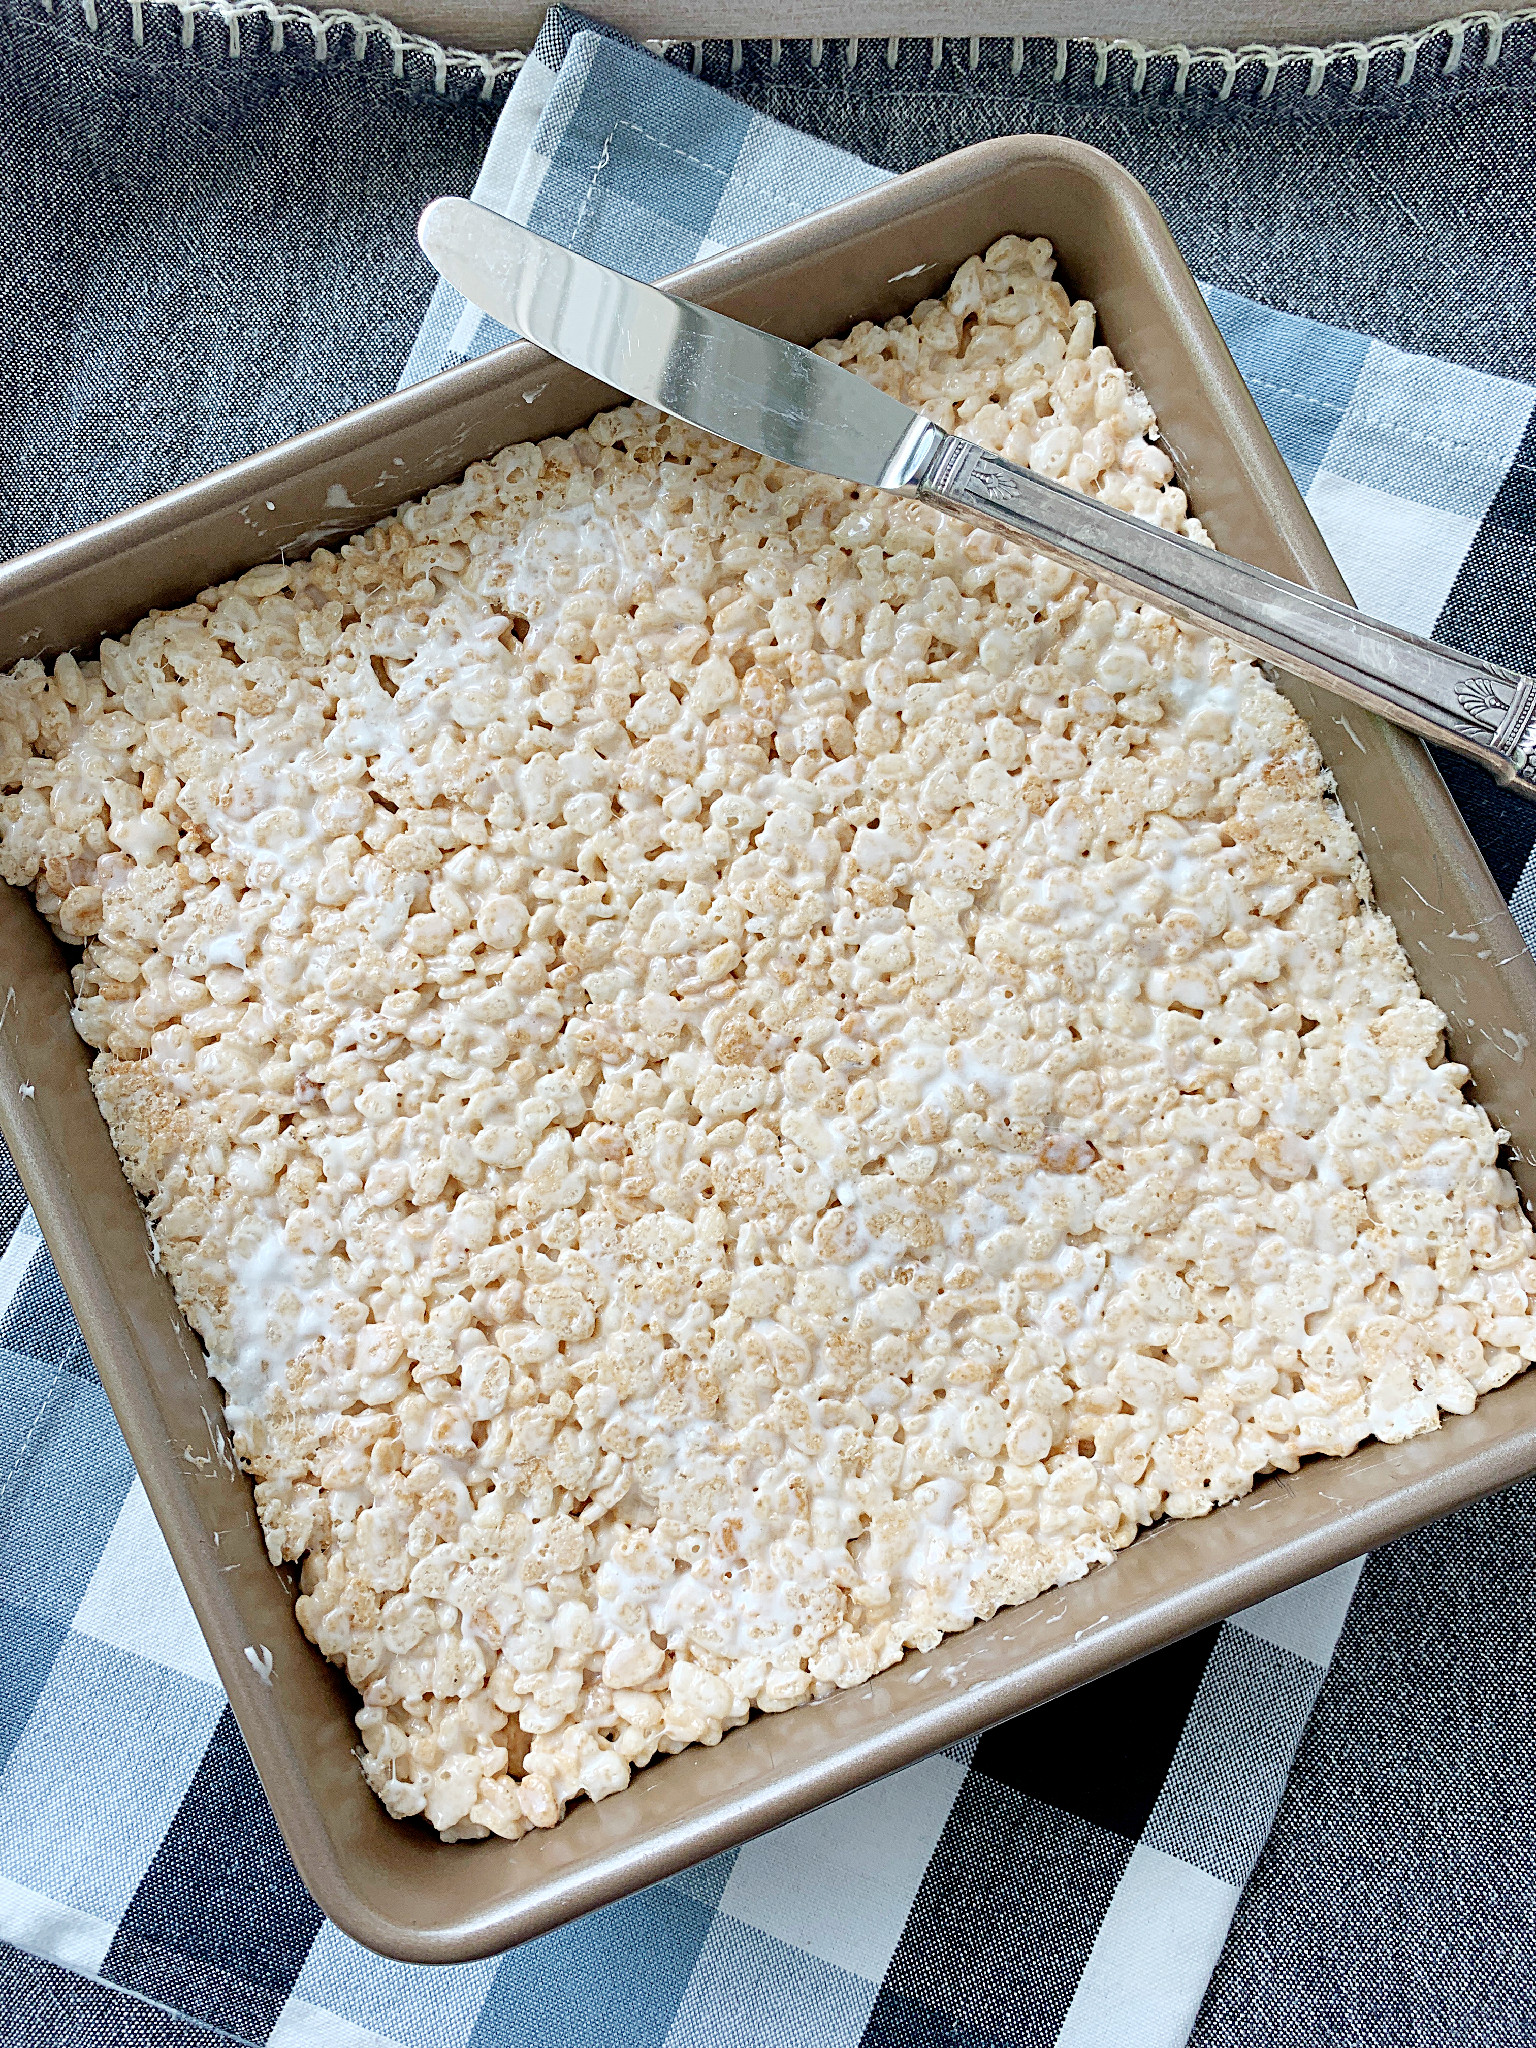 rice krispie treats in the pan